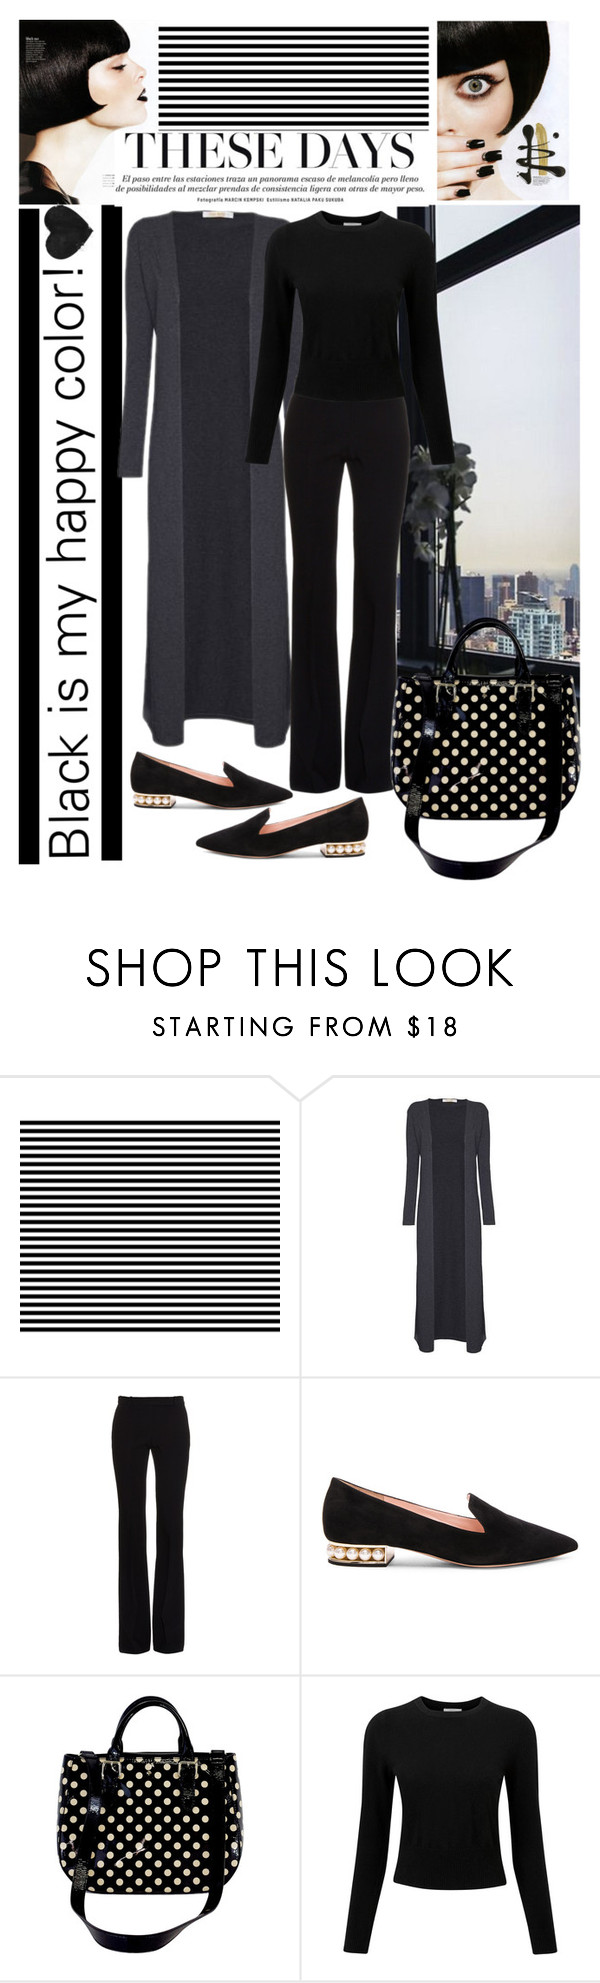 """Untitled #156"" by imajaa ❤ liked on Polyvore featuring Alexander McQueen, Nicholas Kirkwood, Kate Spade, Pure Collection and black"